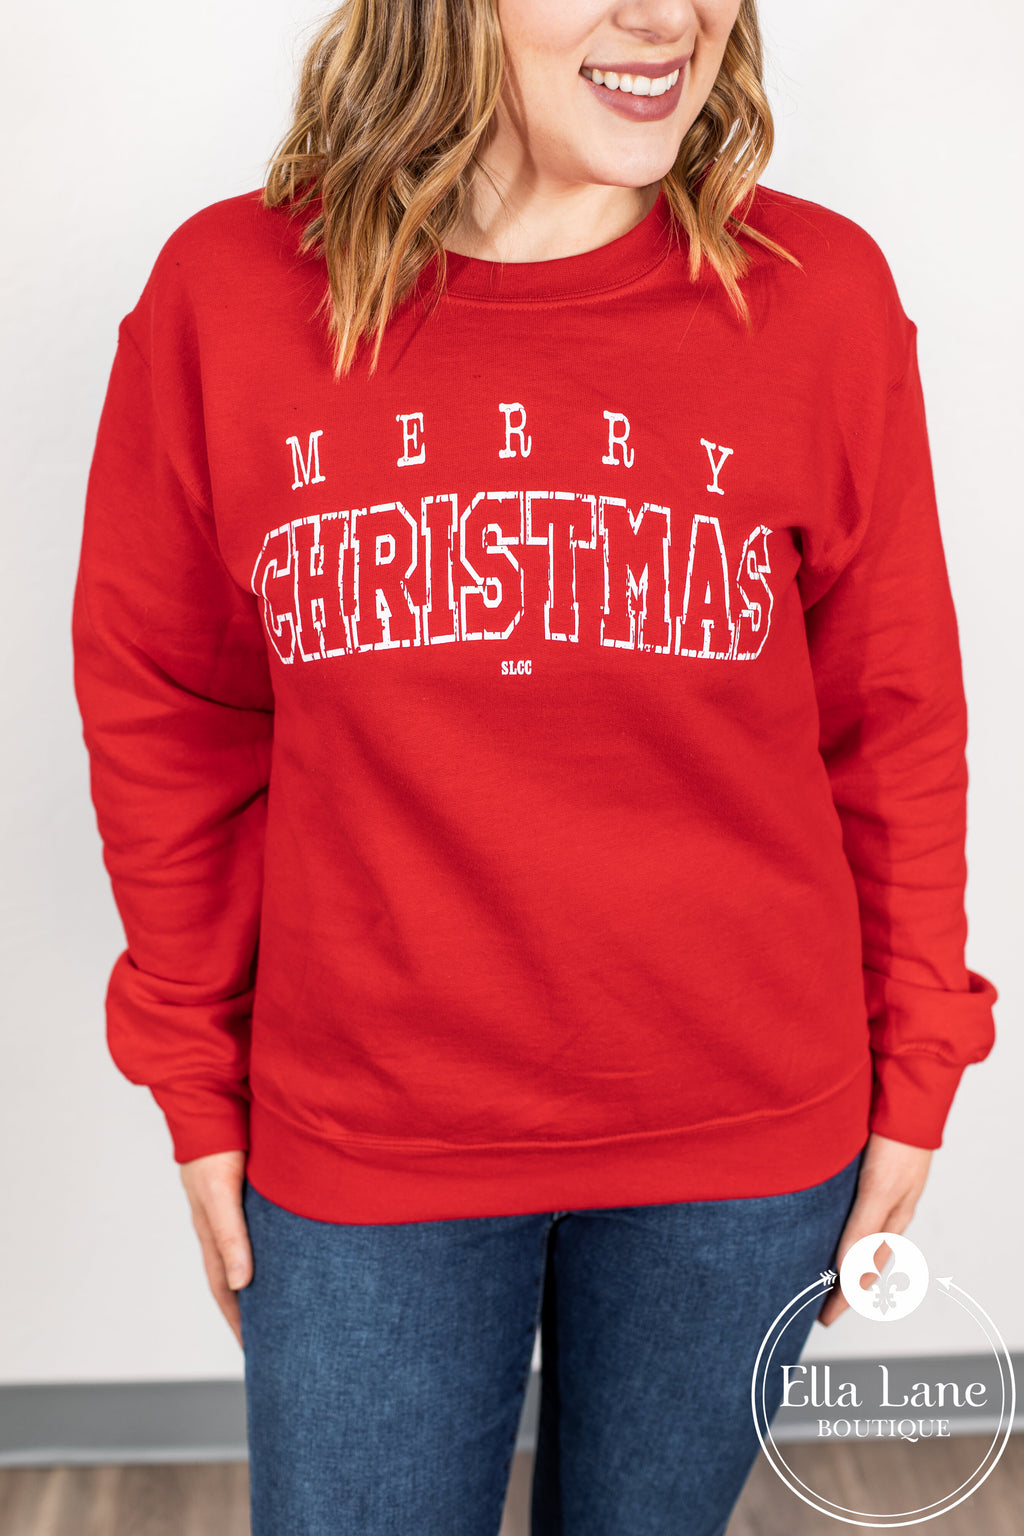 Merry Christmas Pullover Sweatshirt - Red